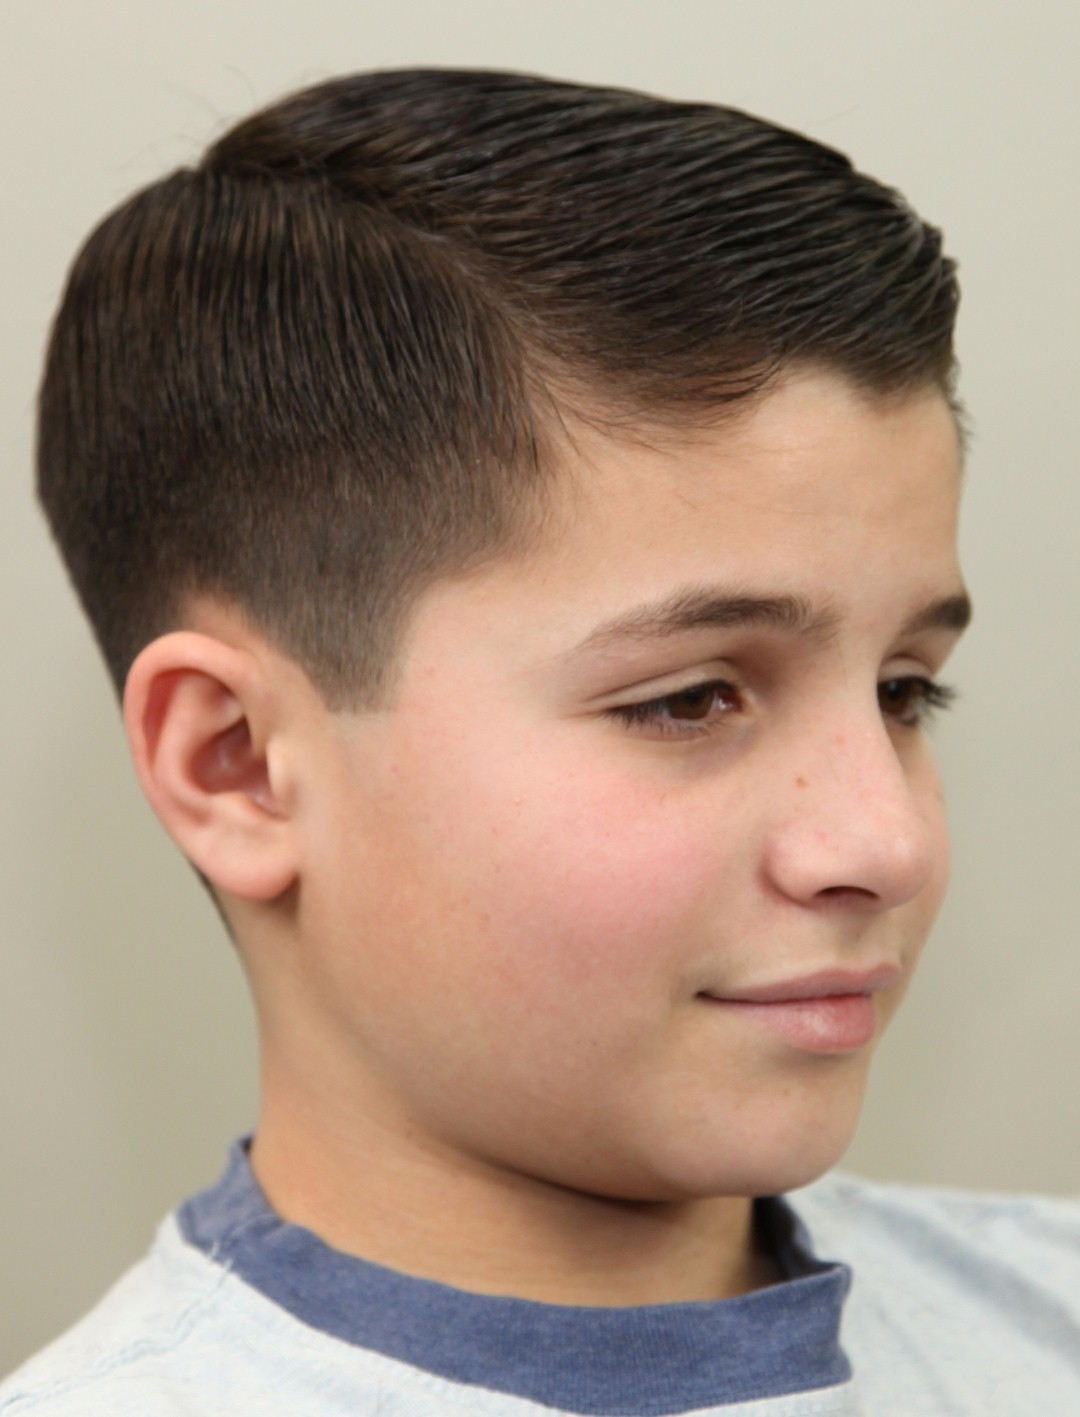 Hair Cut Style Boys Black Boys Haircuts On Pinterest Barbertime